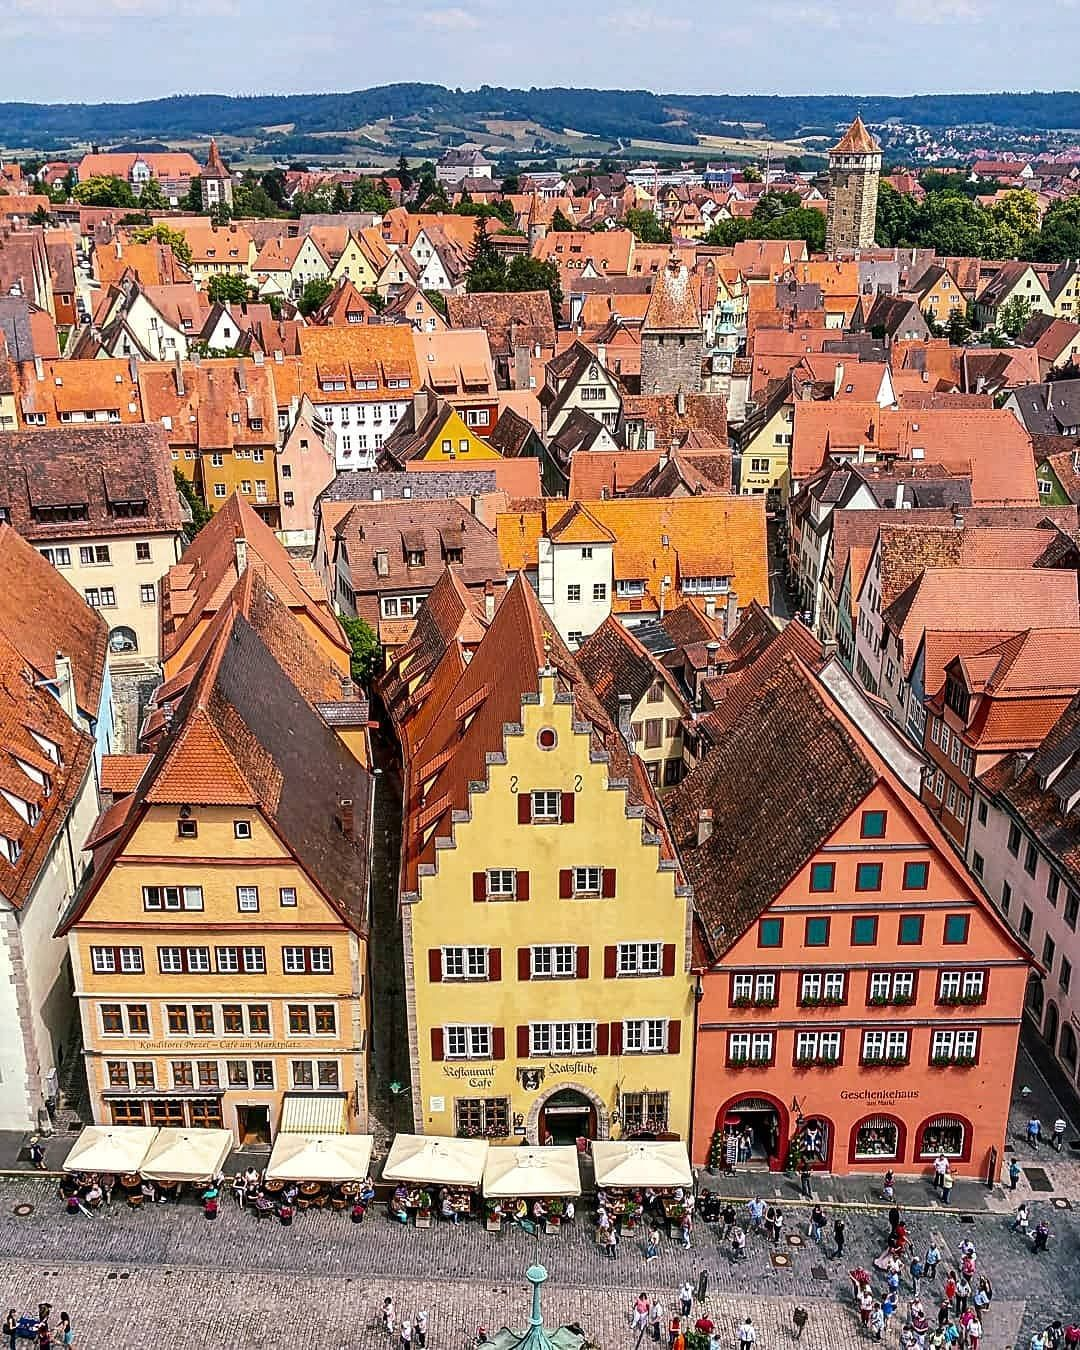 Voyageblondedid You Know That Sections Of Harry Potter The Deathly Hallows Were Filmed Here Aerial Shots Were Taken Of Rothenburg In 2010 But Unfortu